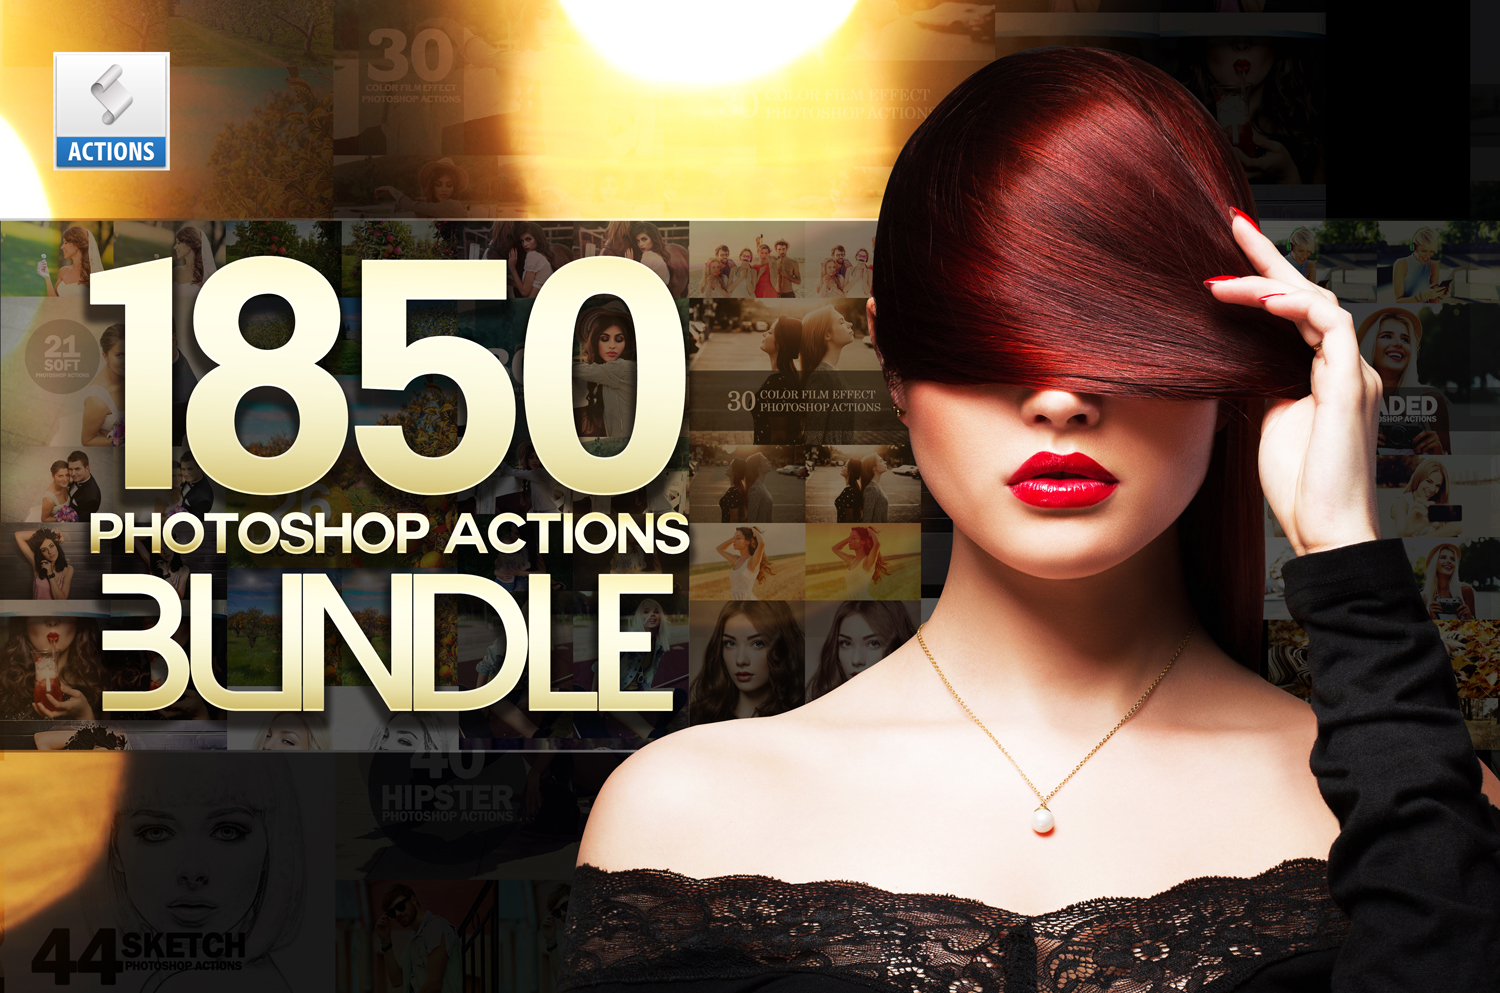 1850 Photoshop Actions example image 2